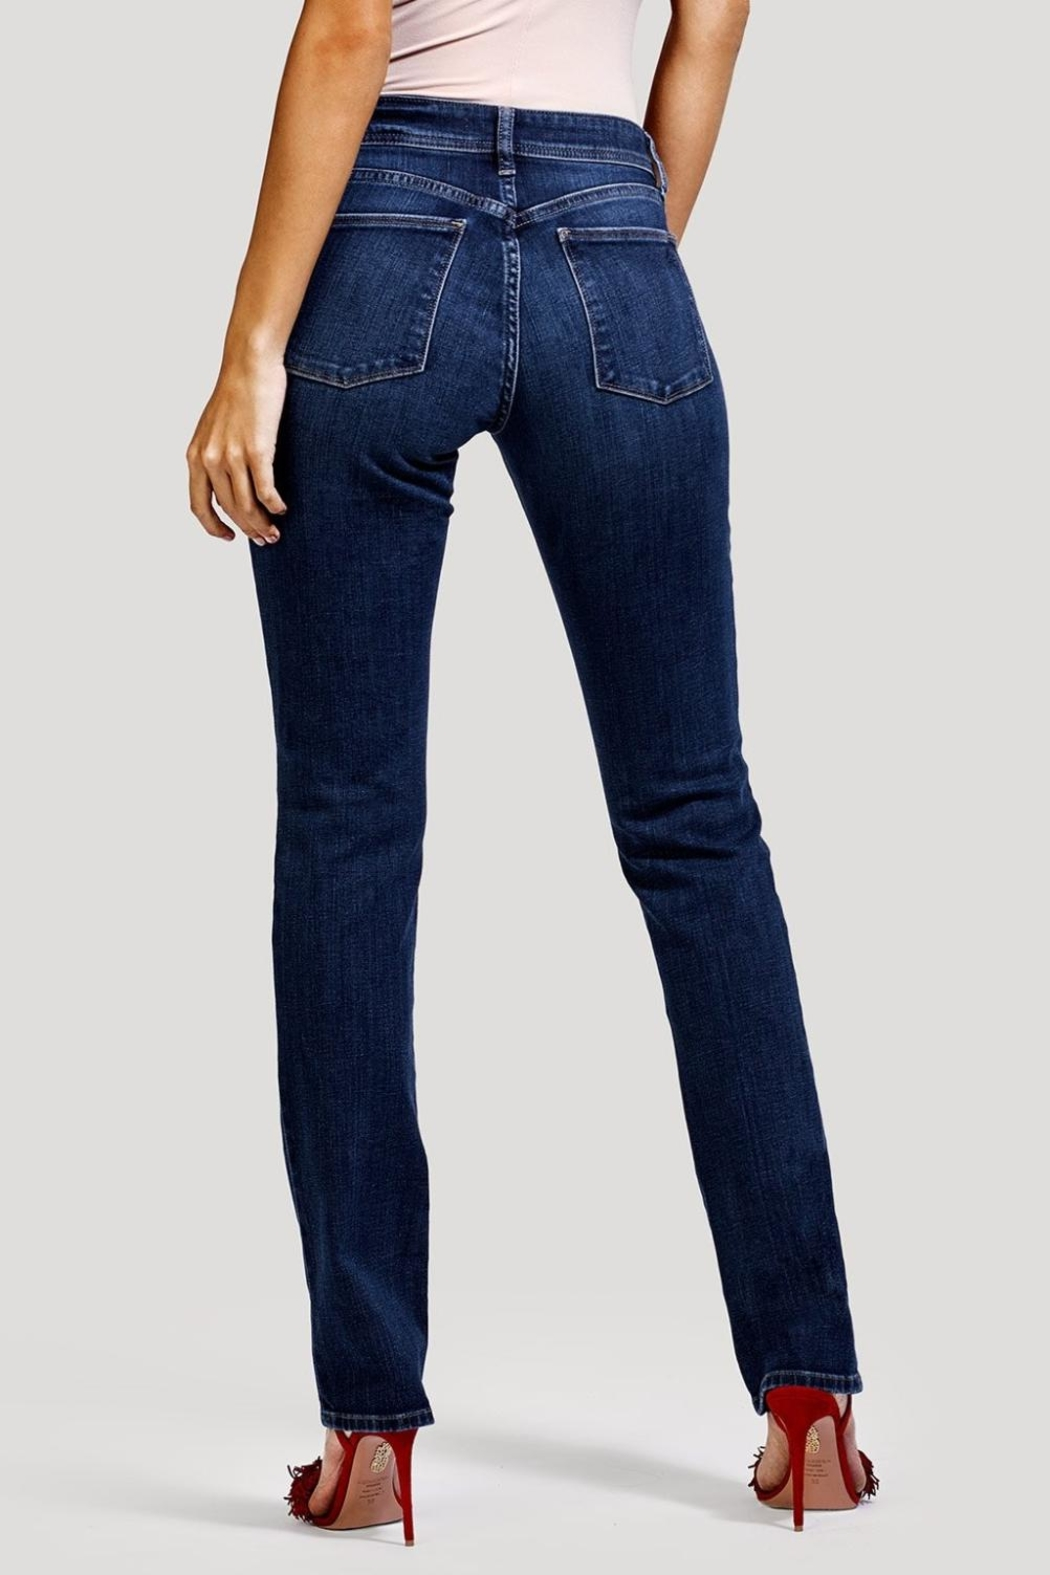 DL1961 Curvy Coco Pacific Jeans - Back Cropped Image